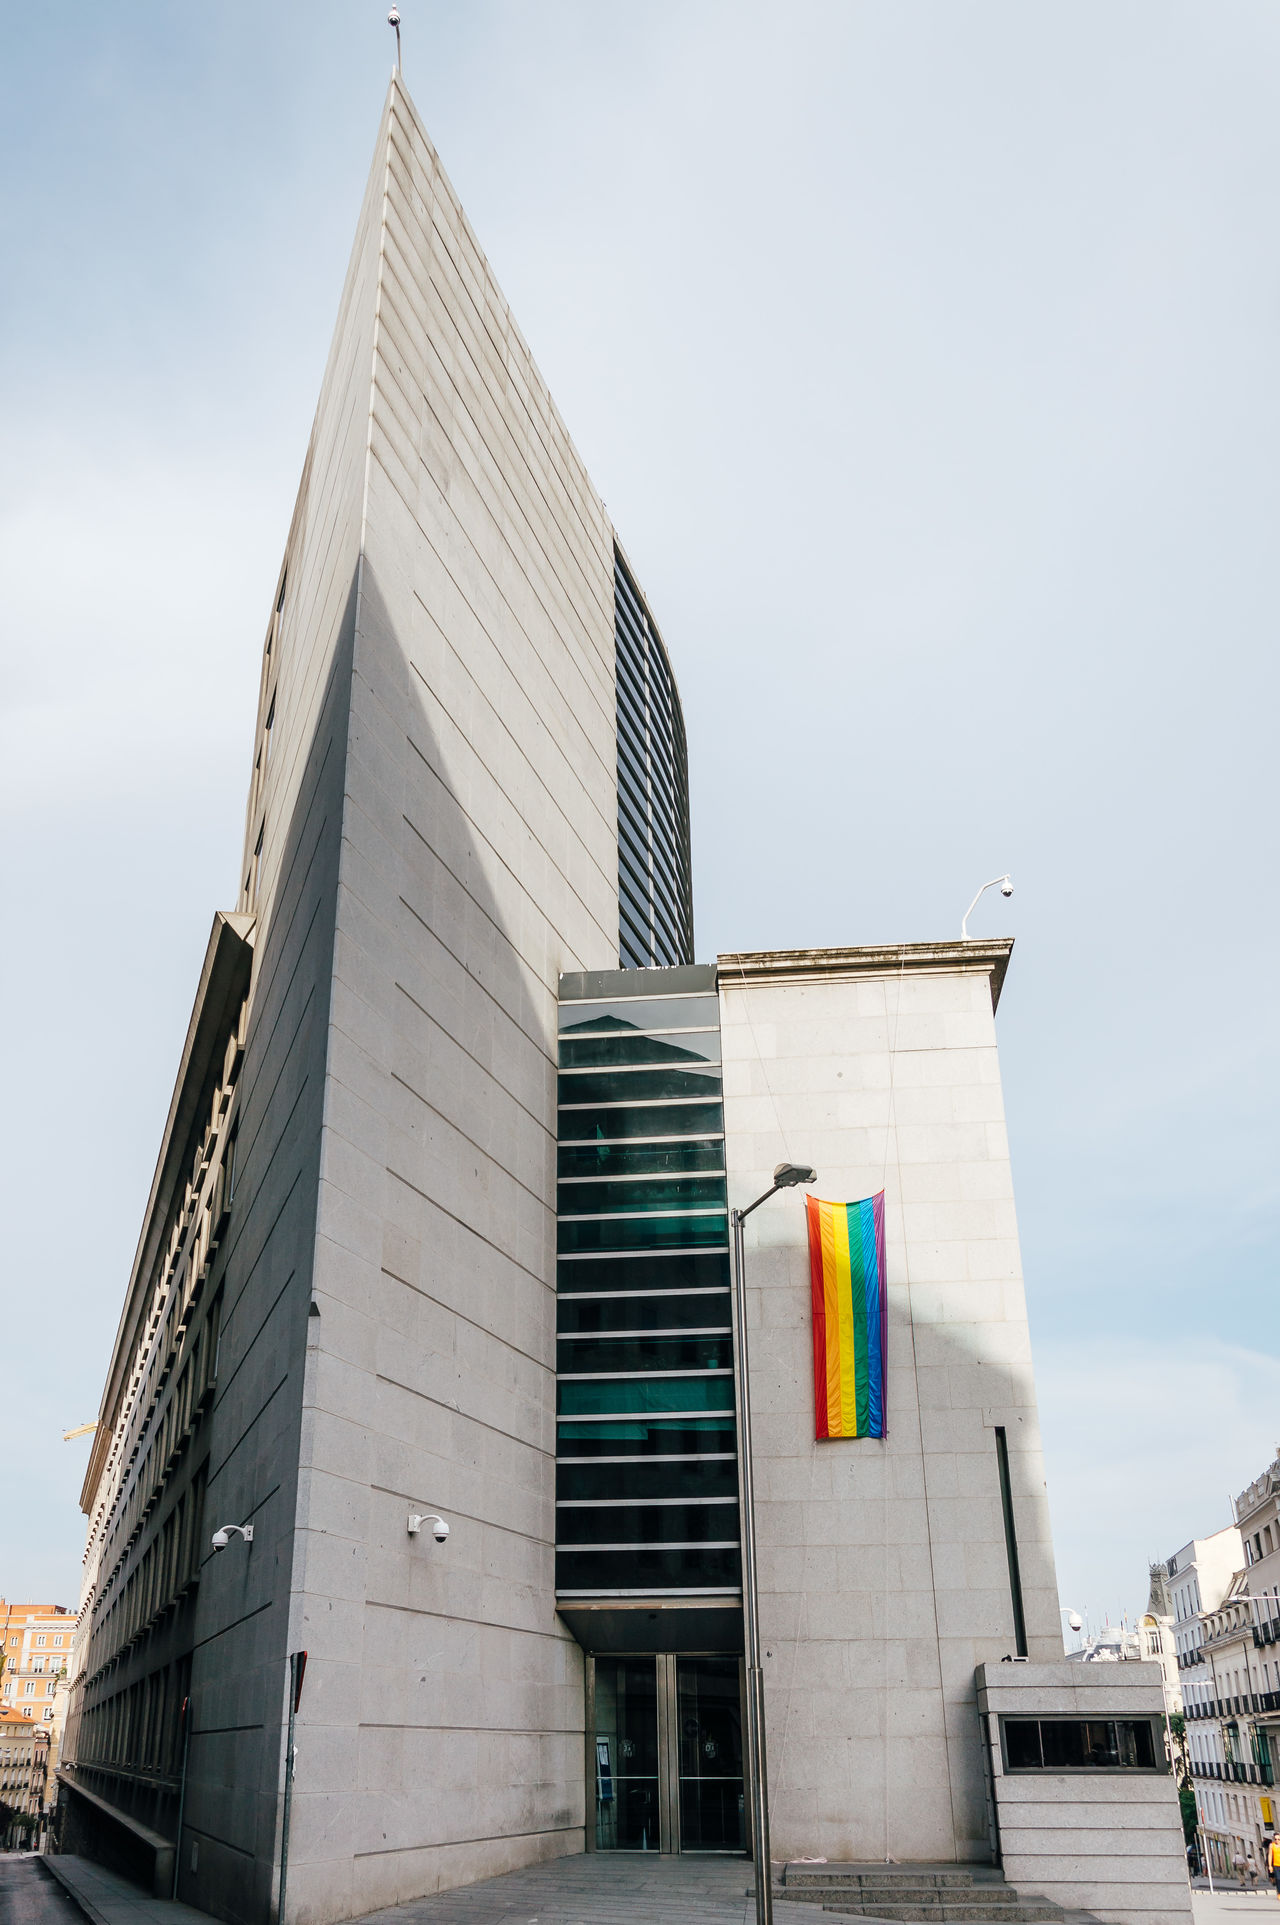 Beautiful stock photos of homosexuell, architecture, built structure, building exterior, sky